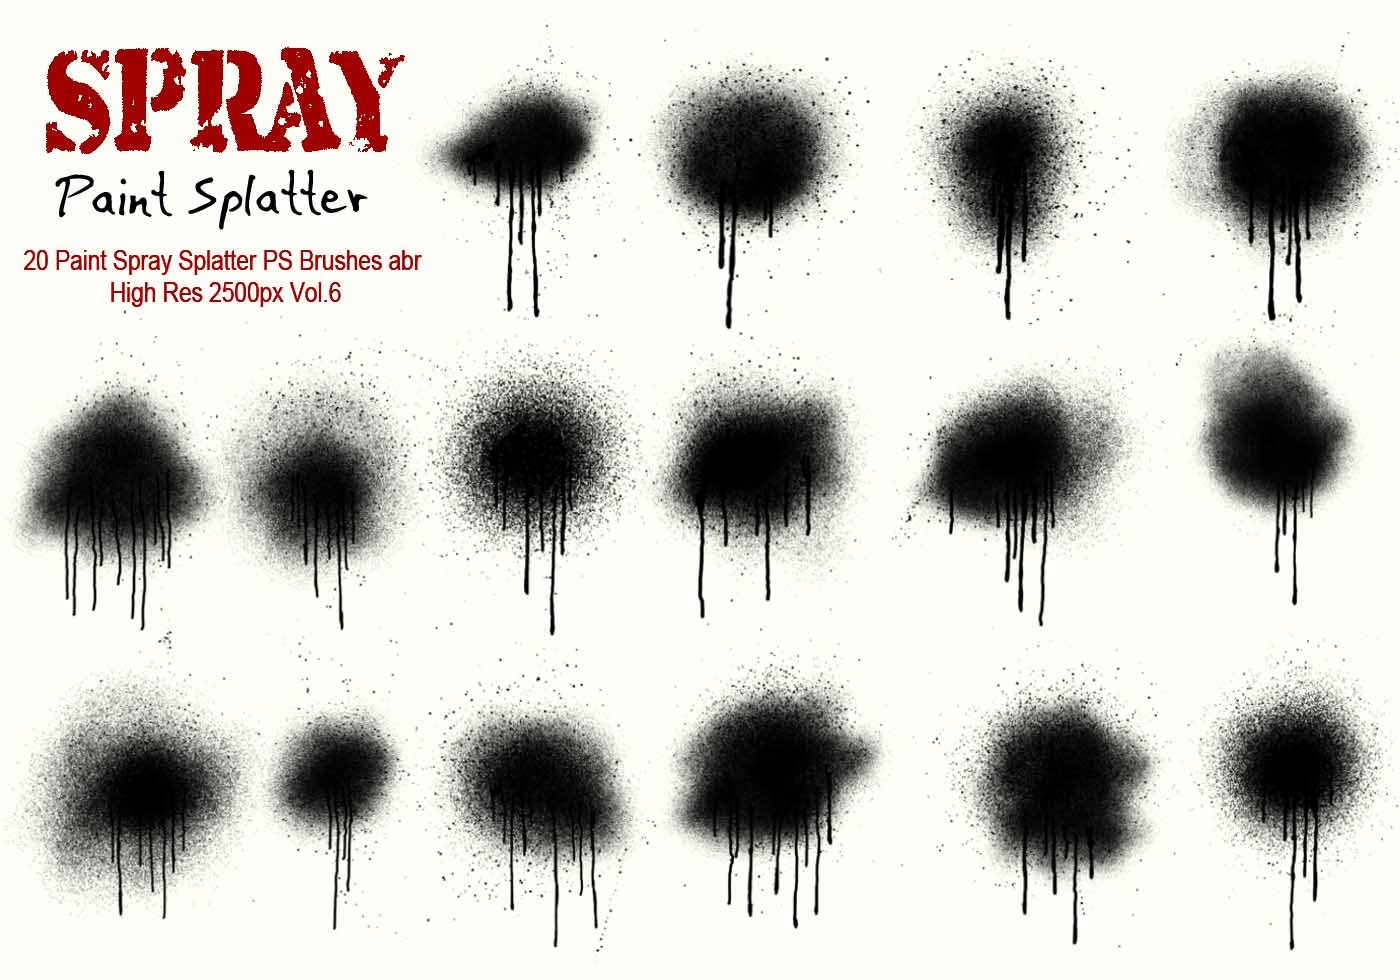 Paint Splatter Brush Photoshop Luxury 20 Paint Spray Splatter Ps Brushes Vol 6 Free Shop